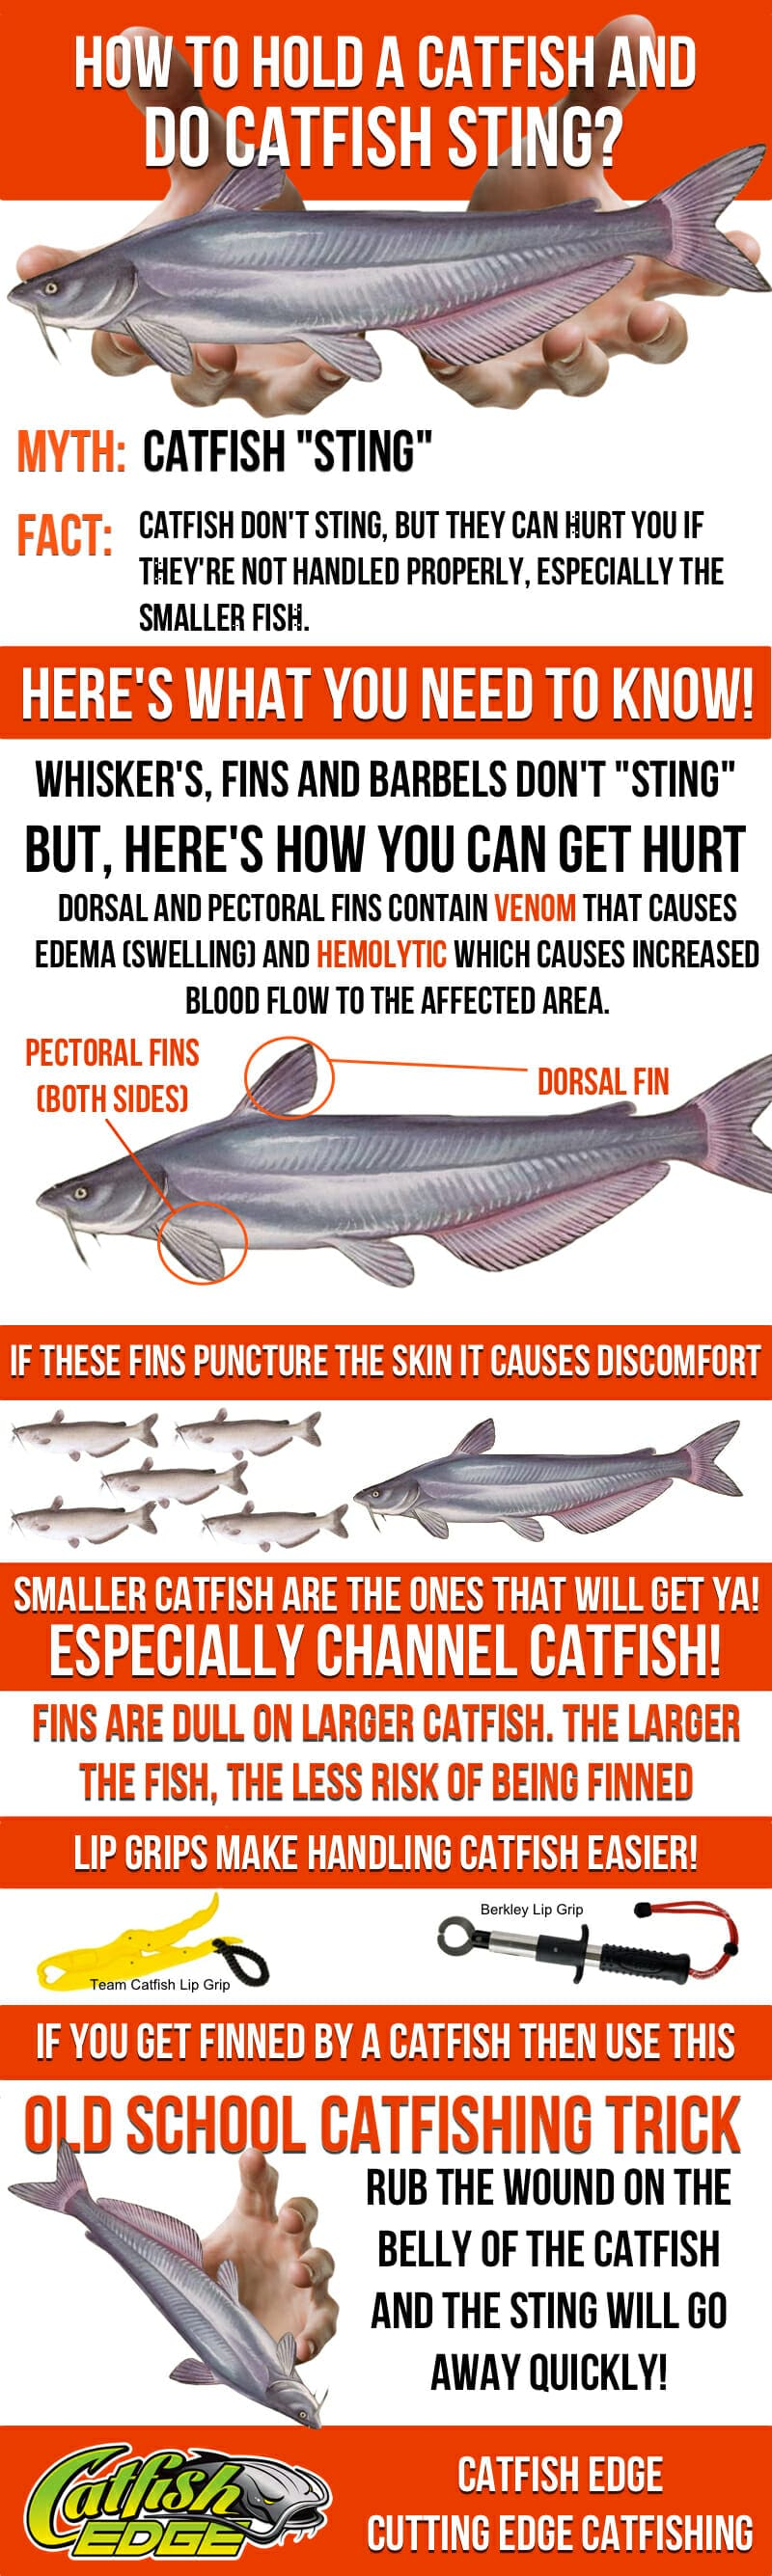 How To Hold a Catfish Anatomy